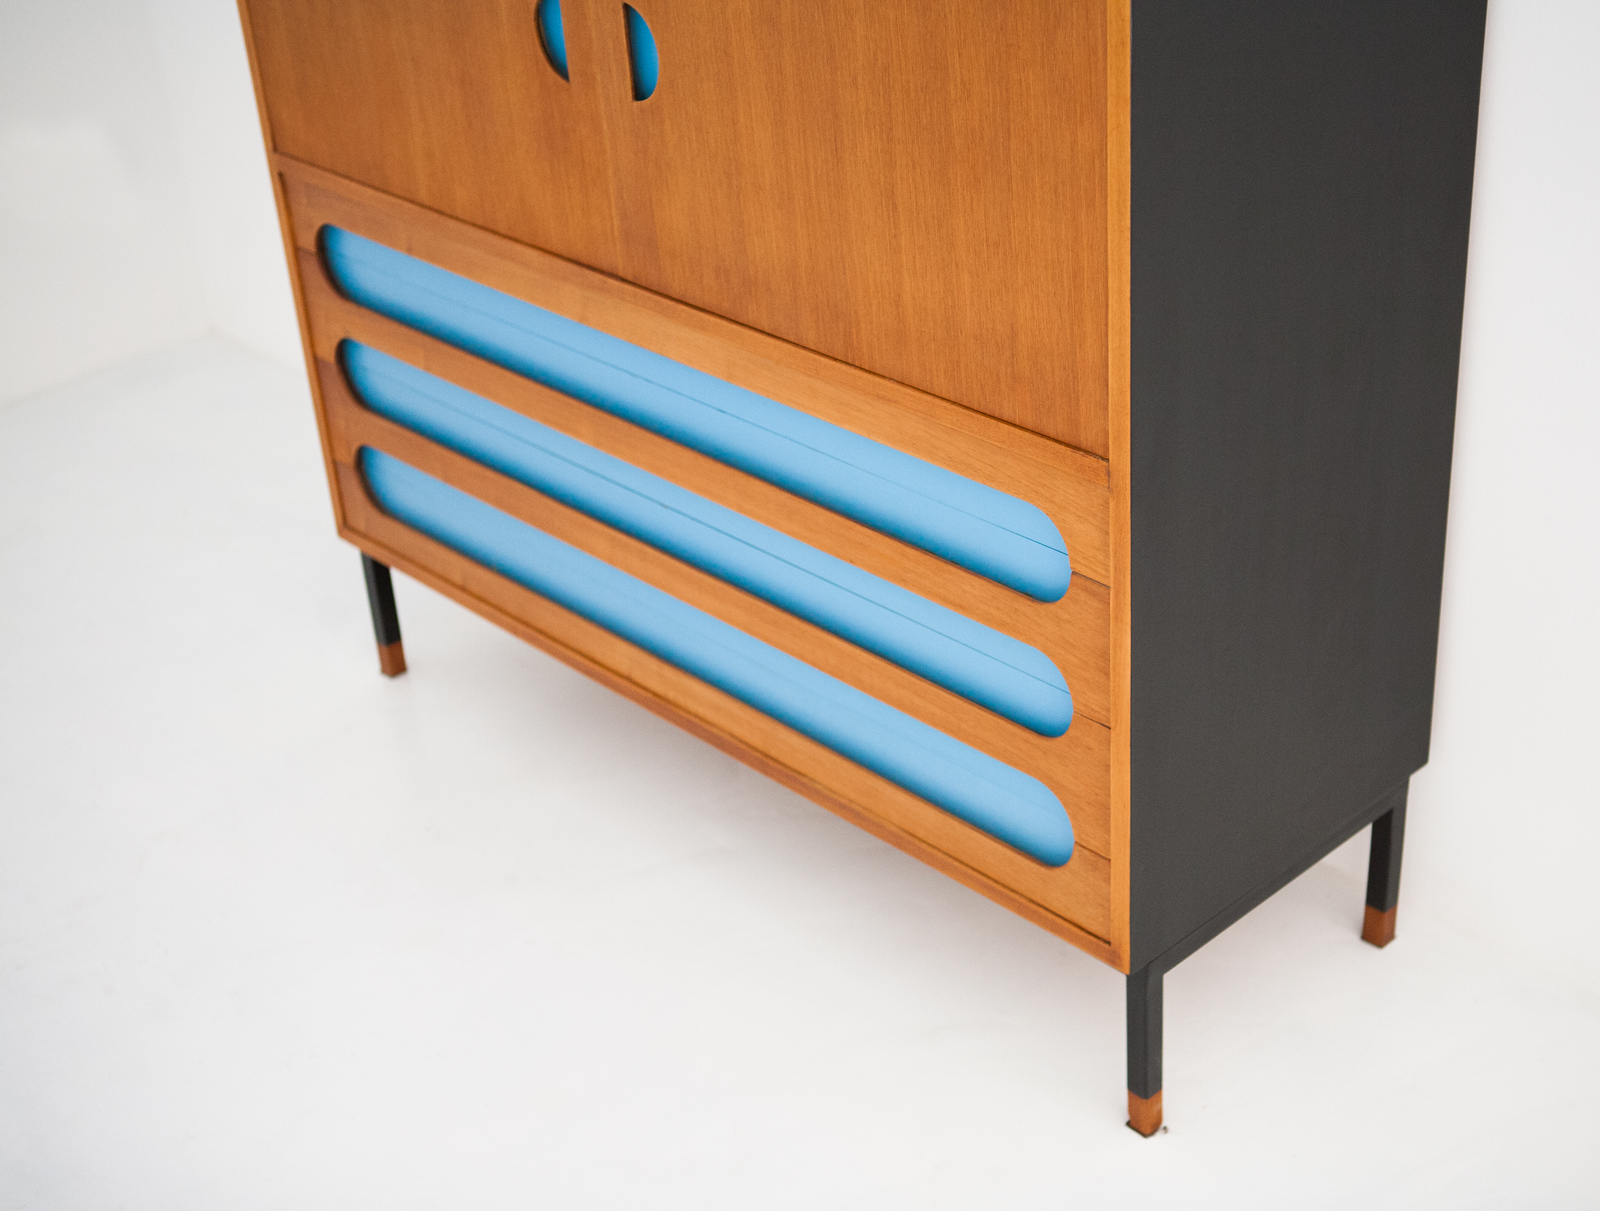 Sideboard 78 4 retro4m for Sideboard 4 meter lang